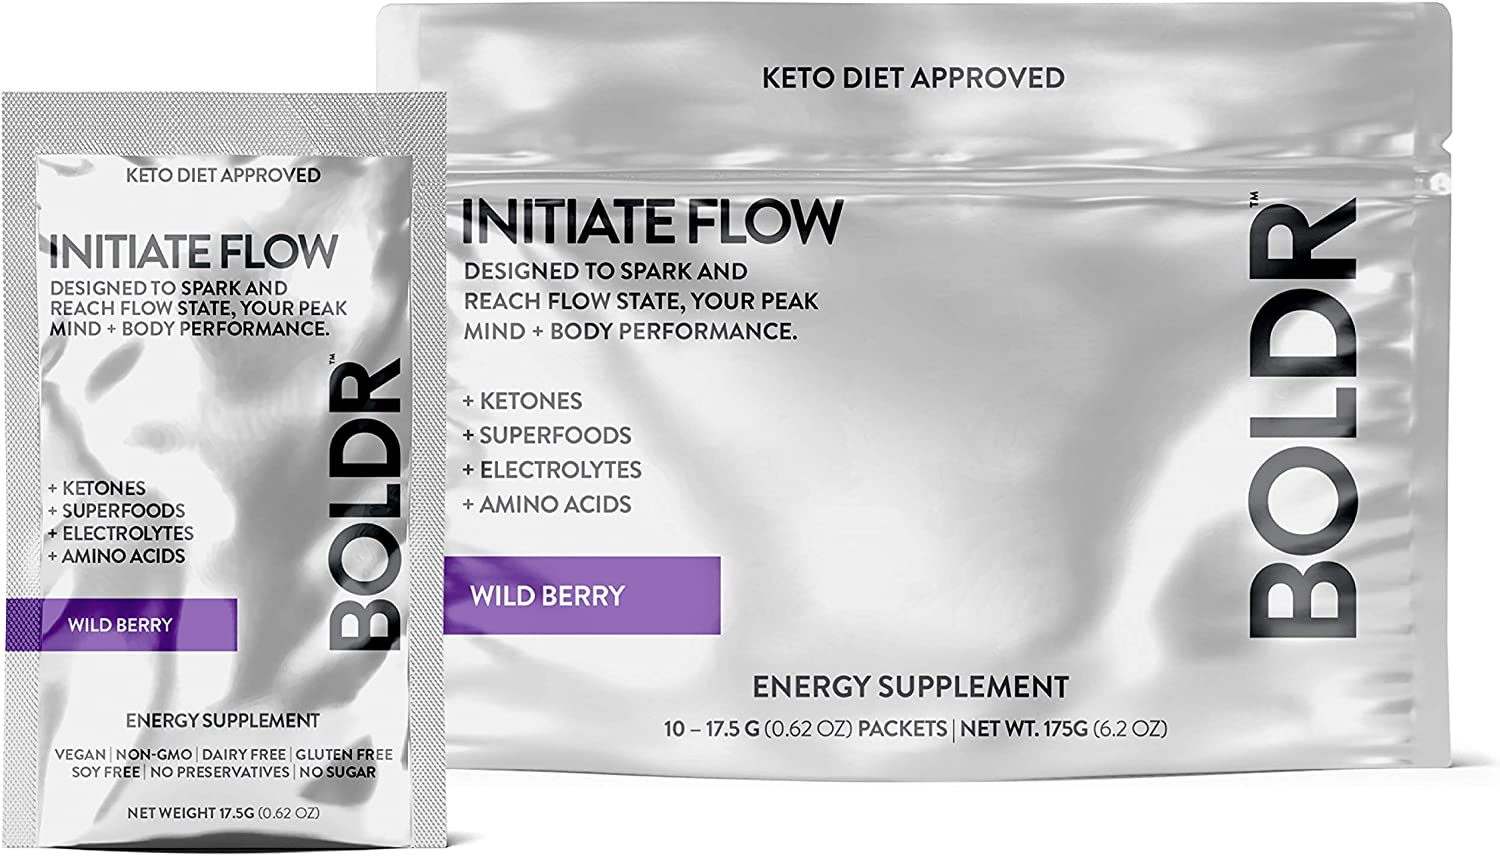 BOLDR Clean Energy Drink Mix, Sugar Free Super Powder for Healthy Energy and Hydration with Vitamin B12, Caffeine, Ketones, Superfoods and Electrolytes in Packets (Wild Berry Flavor, 10 Pack)